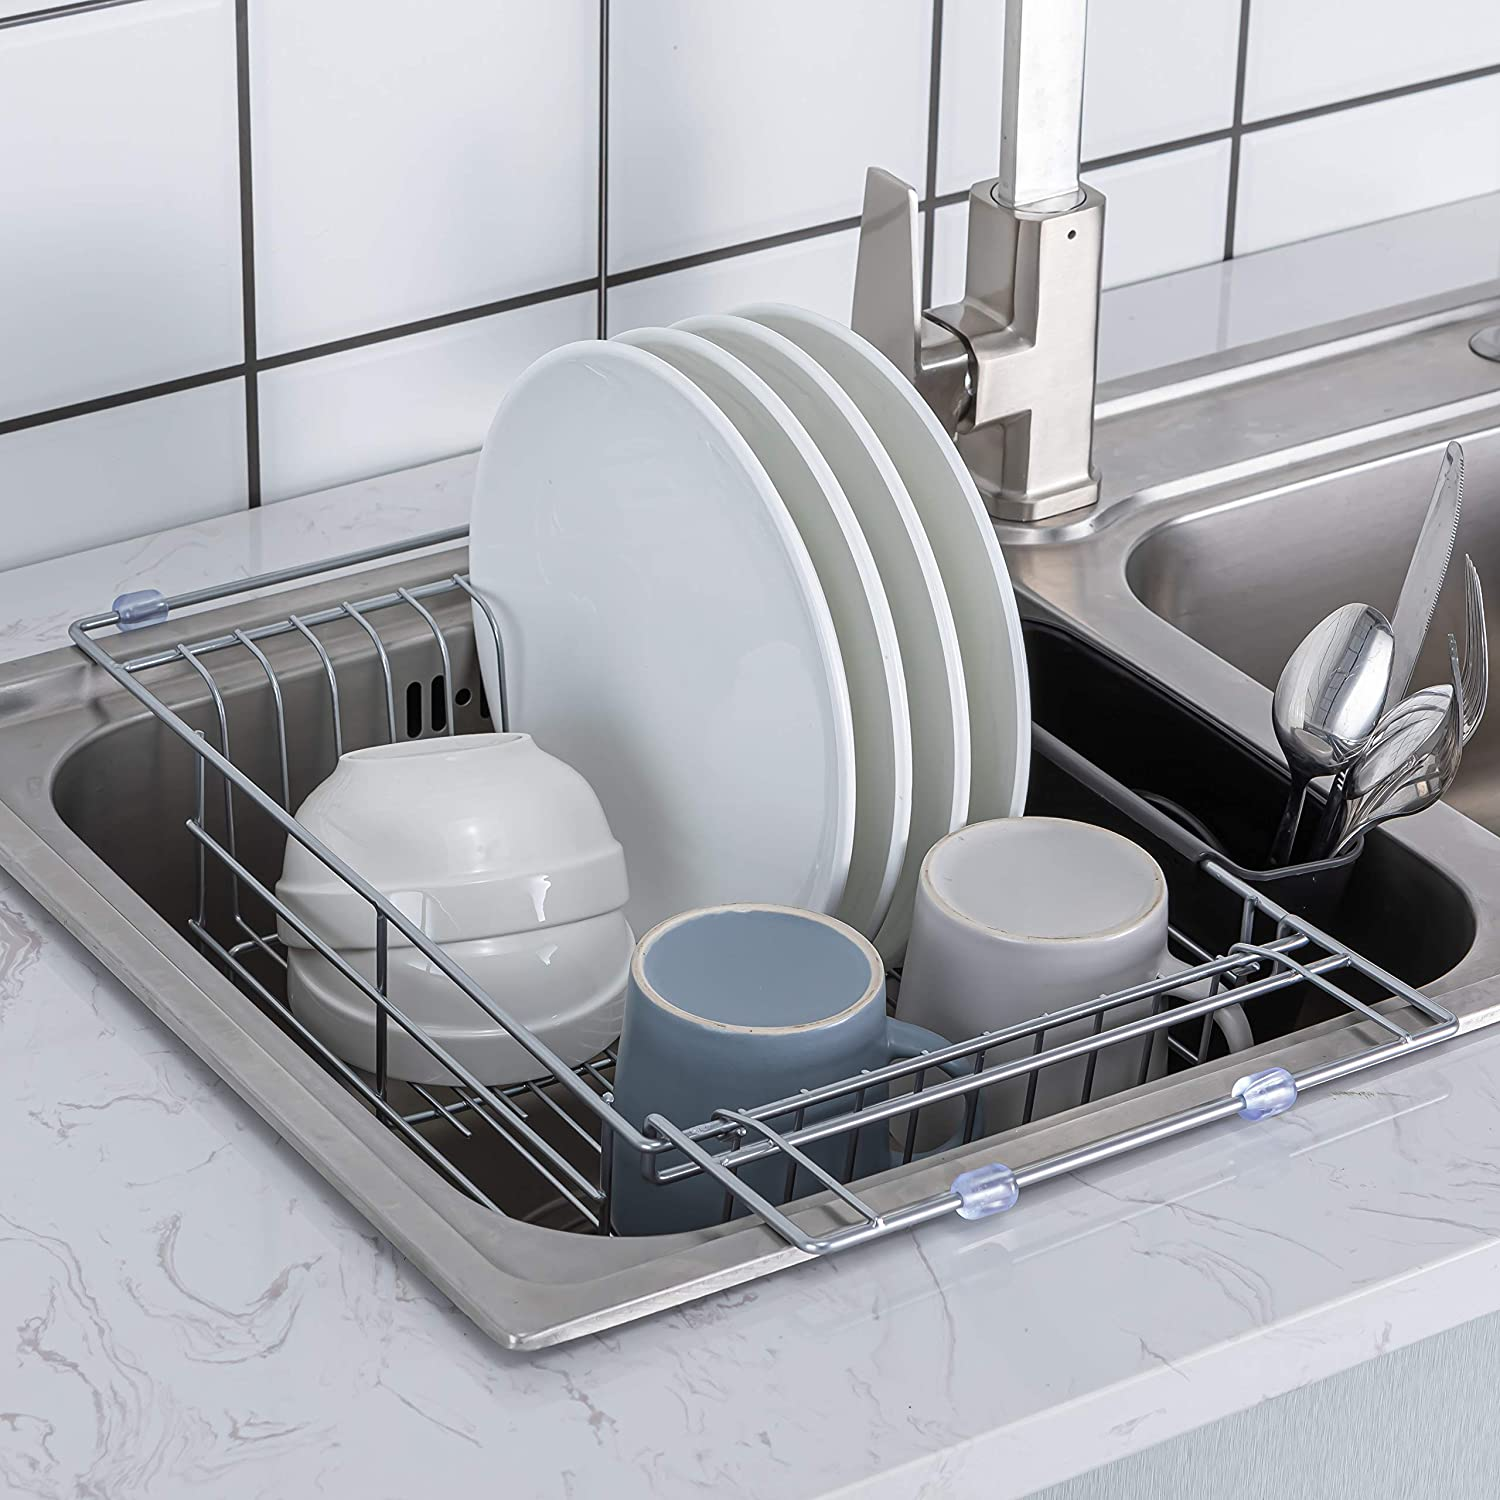 PremiumRacks Expandable Over the Max 69% OFF Sink Ranking TOP8 304 Stainless Dish Rack -